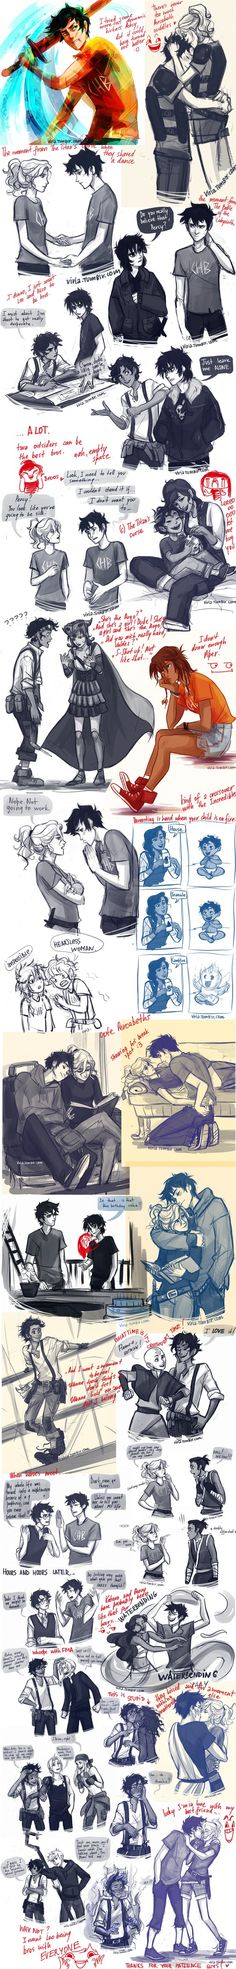 http://www.deviantart.com/art/I-clearly-don-t-draw-enough-Percy-Jackson-369197993 This is beautiful